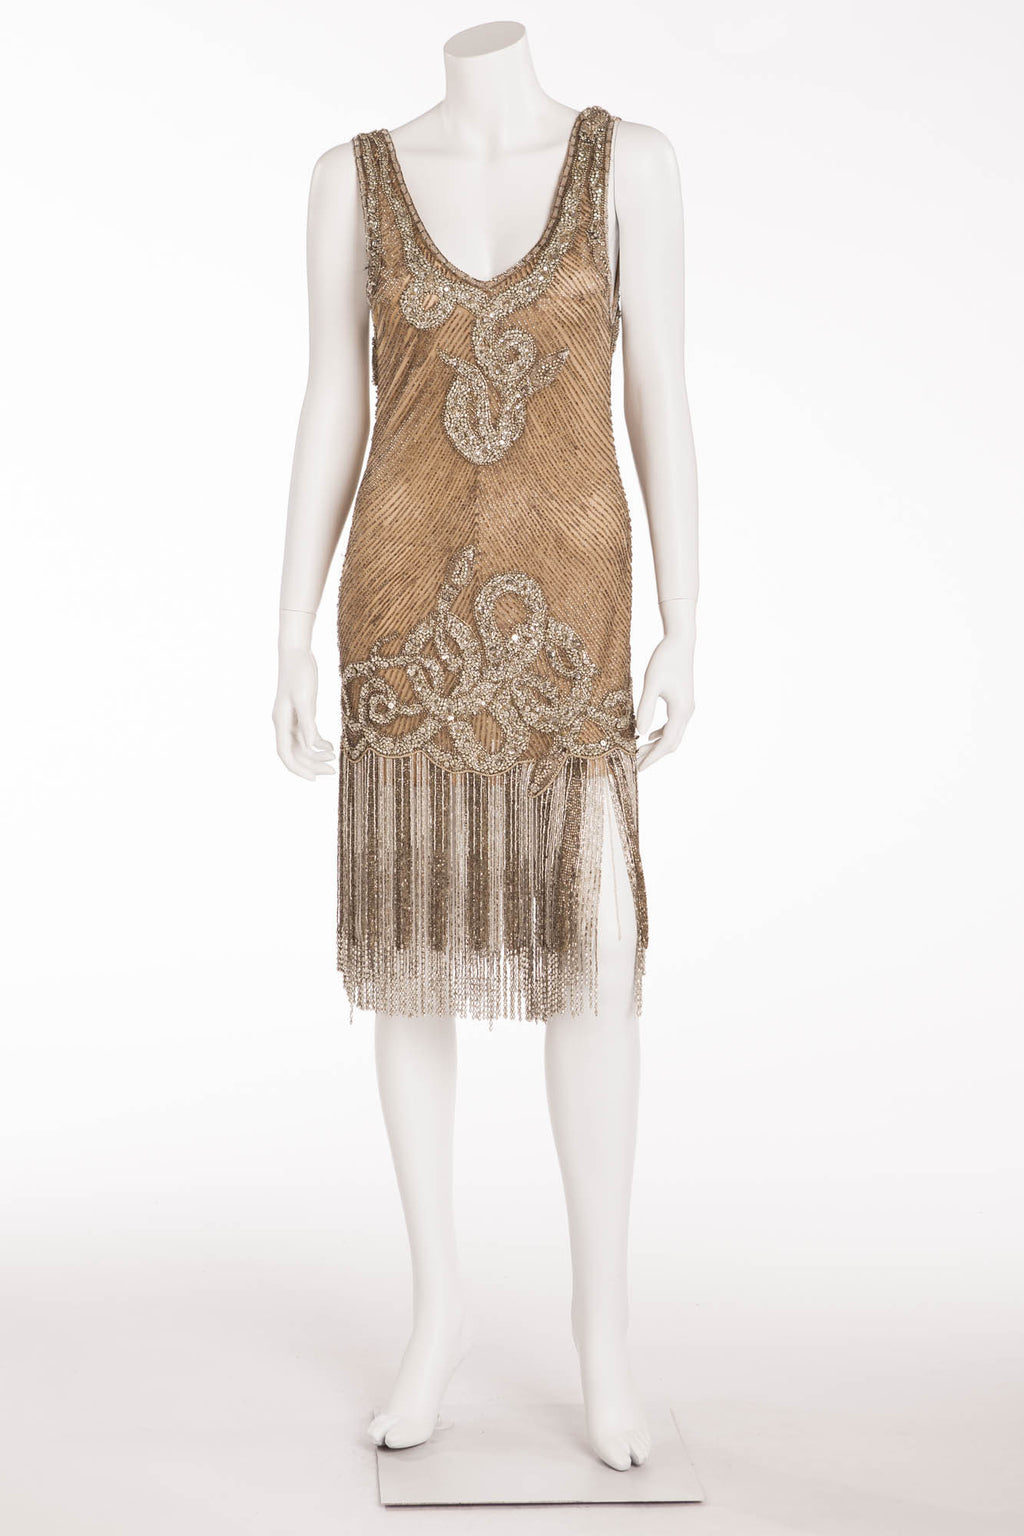 Marchesa - Jeweled Dress Embroidered with Silver Beads - US 6